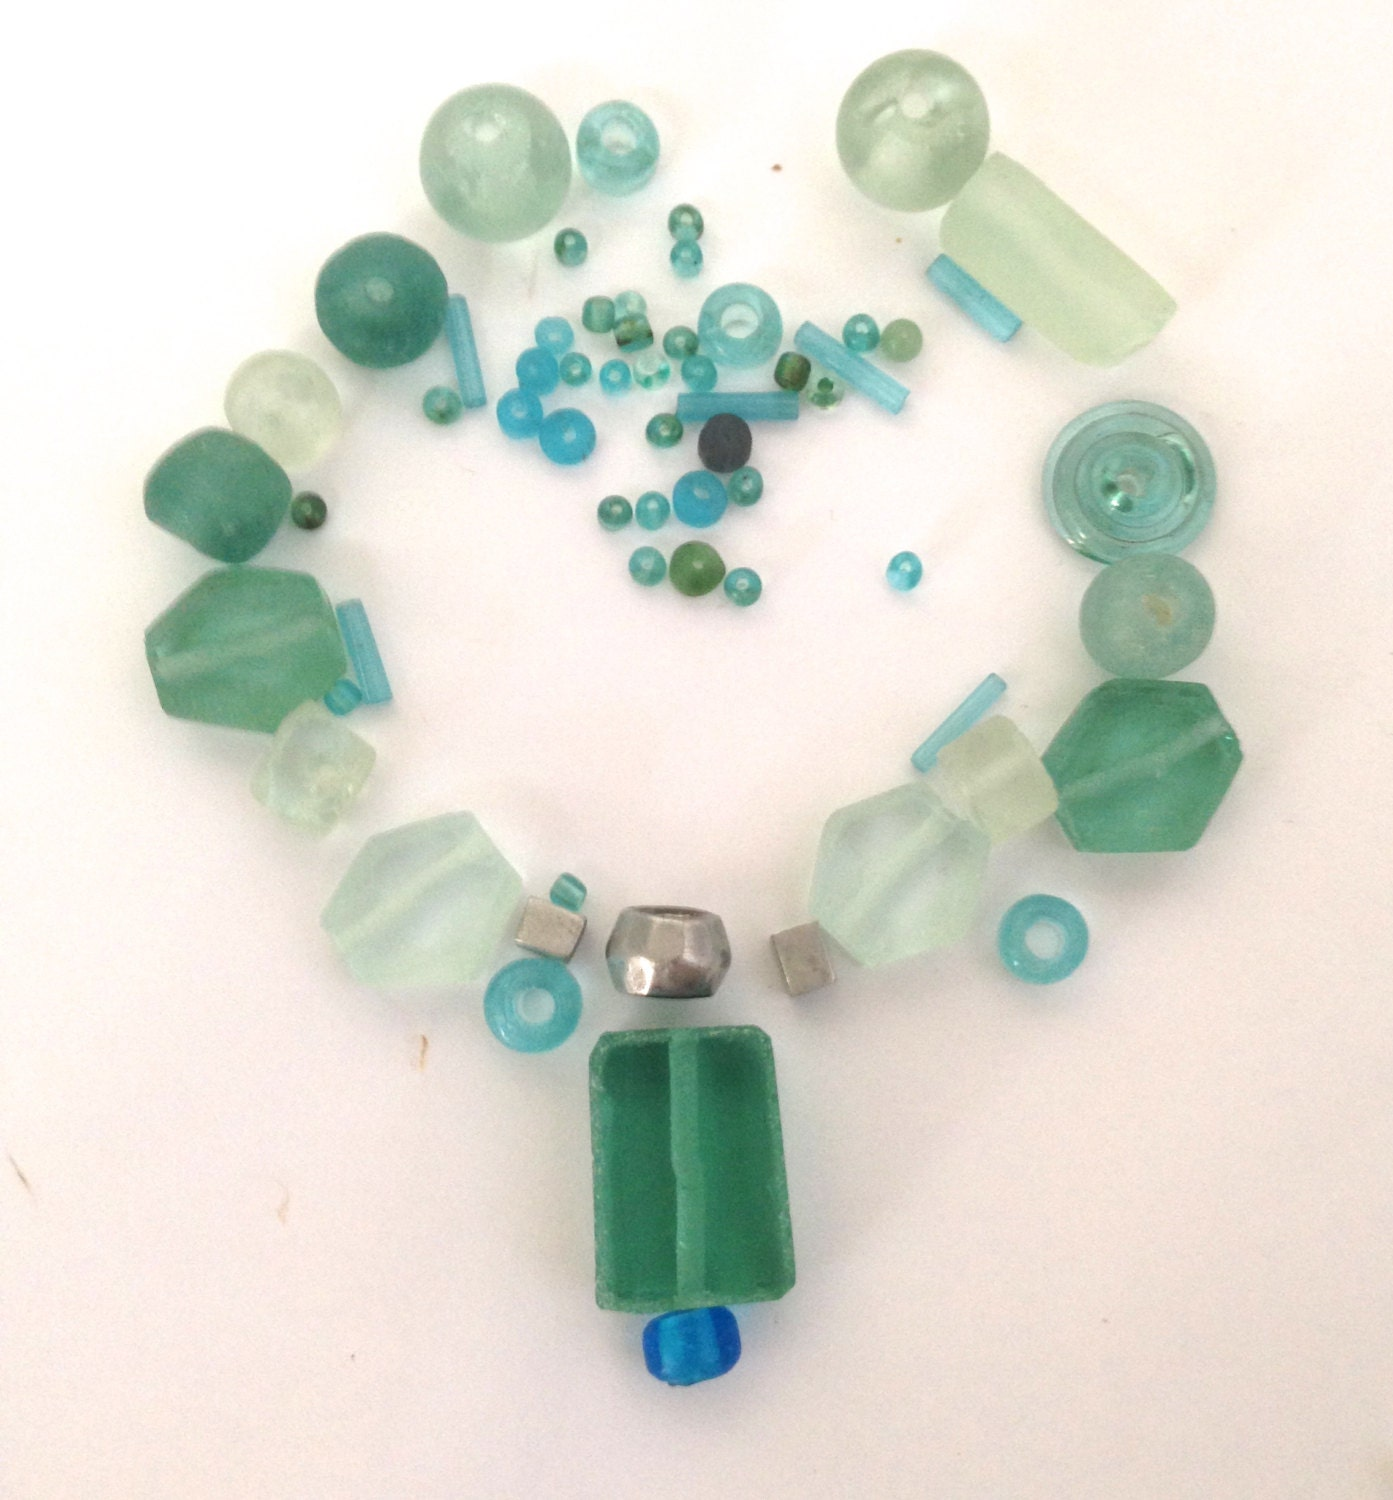 bead assortment collections handmade recycled glass by